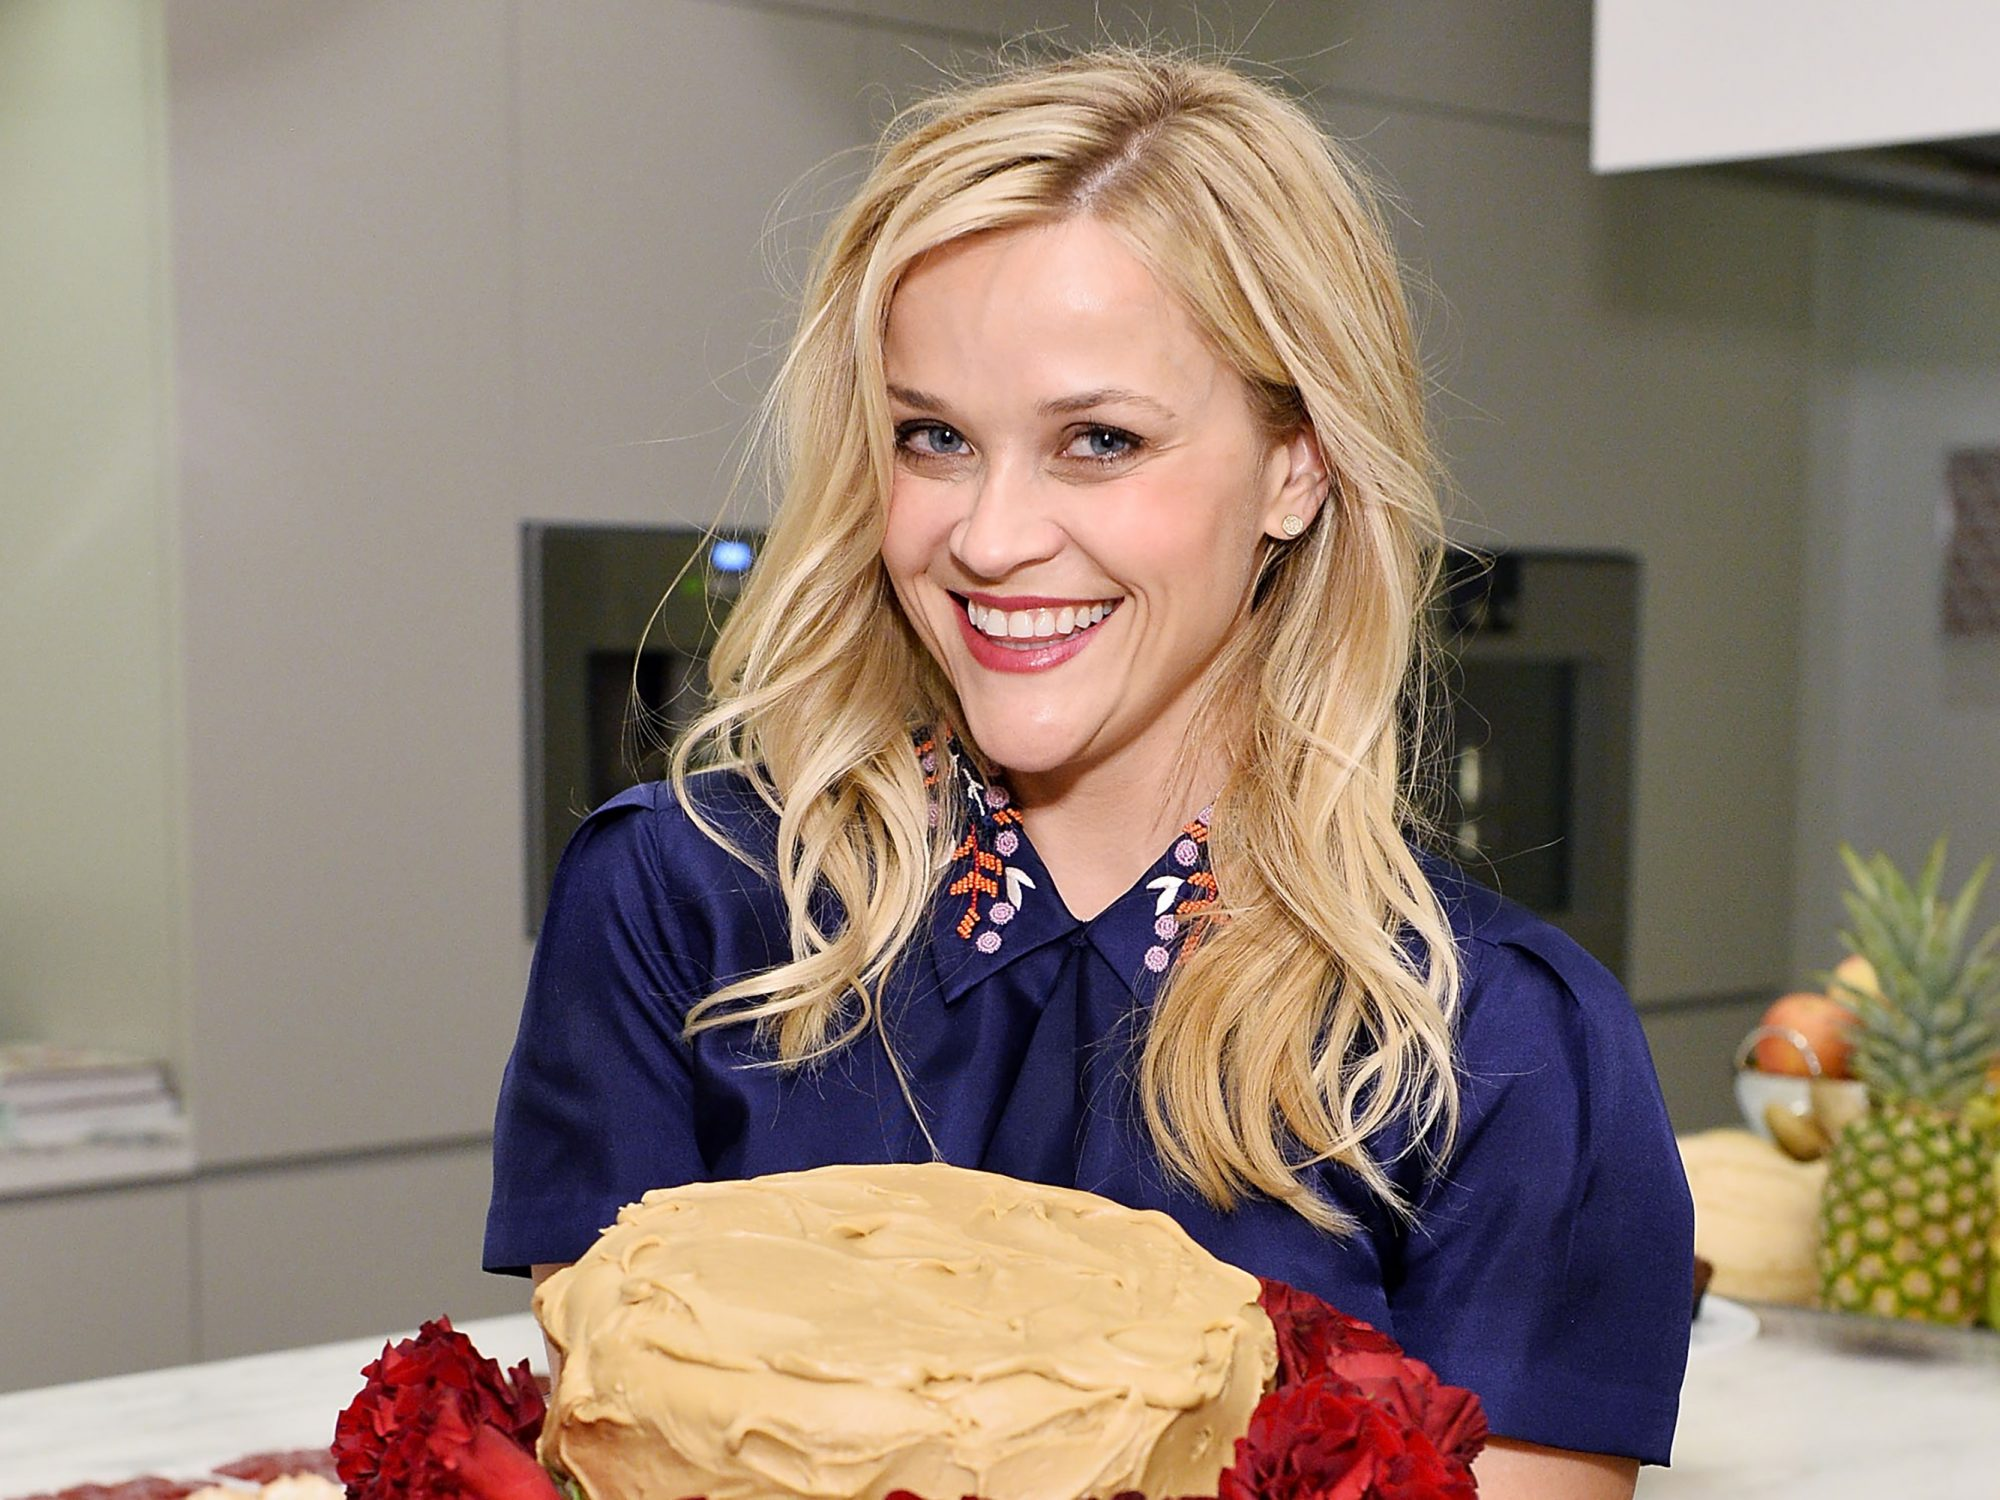 Reese Witherspoon Just Showed Us That Epic Food Fails Can Happen to Anyone